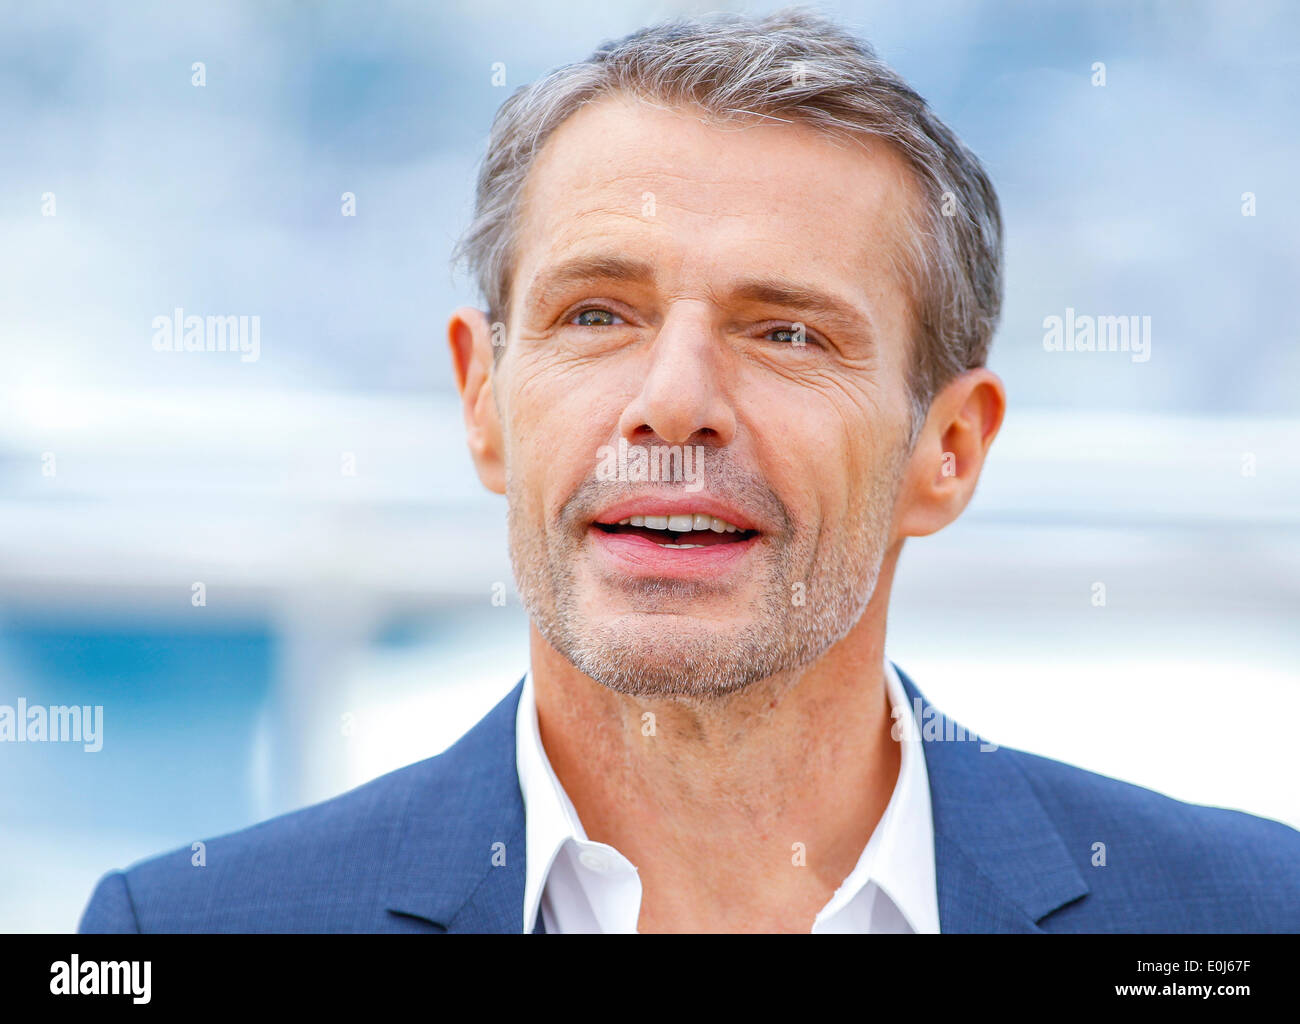 LAMBERT WILSON MASTER OF CEREMONIES PHOTOCALL. 67TH CANNES FILM FESTIVAL  CANNES FRANCE 14 May 2014